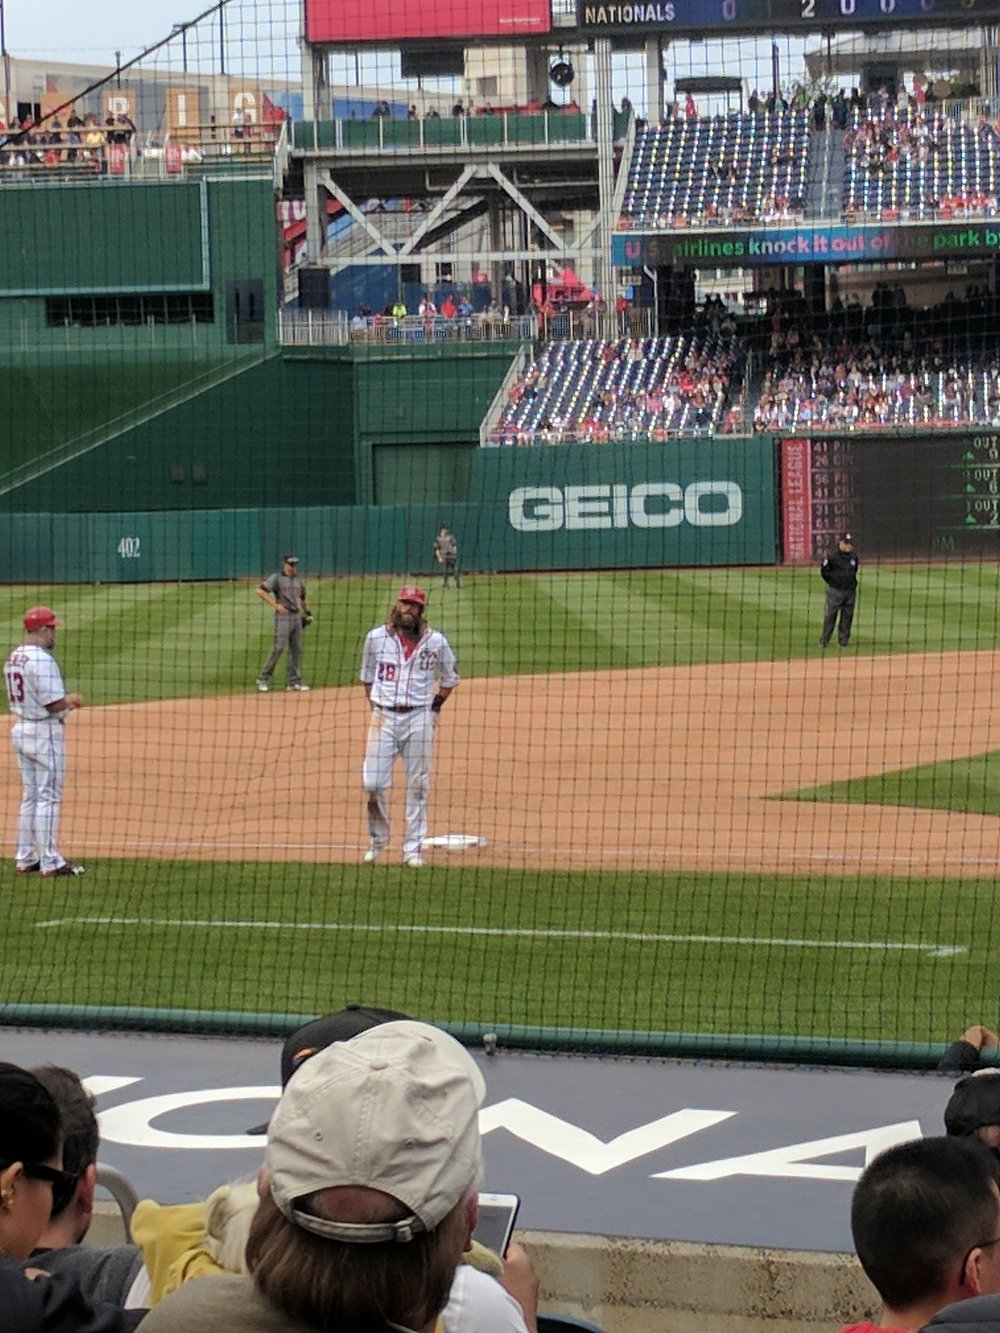 Jayson Werth's overwhelming awesomeness singlehandedly protected all the players and fans from the destructive power of the Diamondbacks' horrible uniforms (Washington, DC; May 2017)